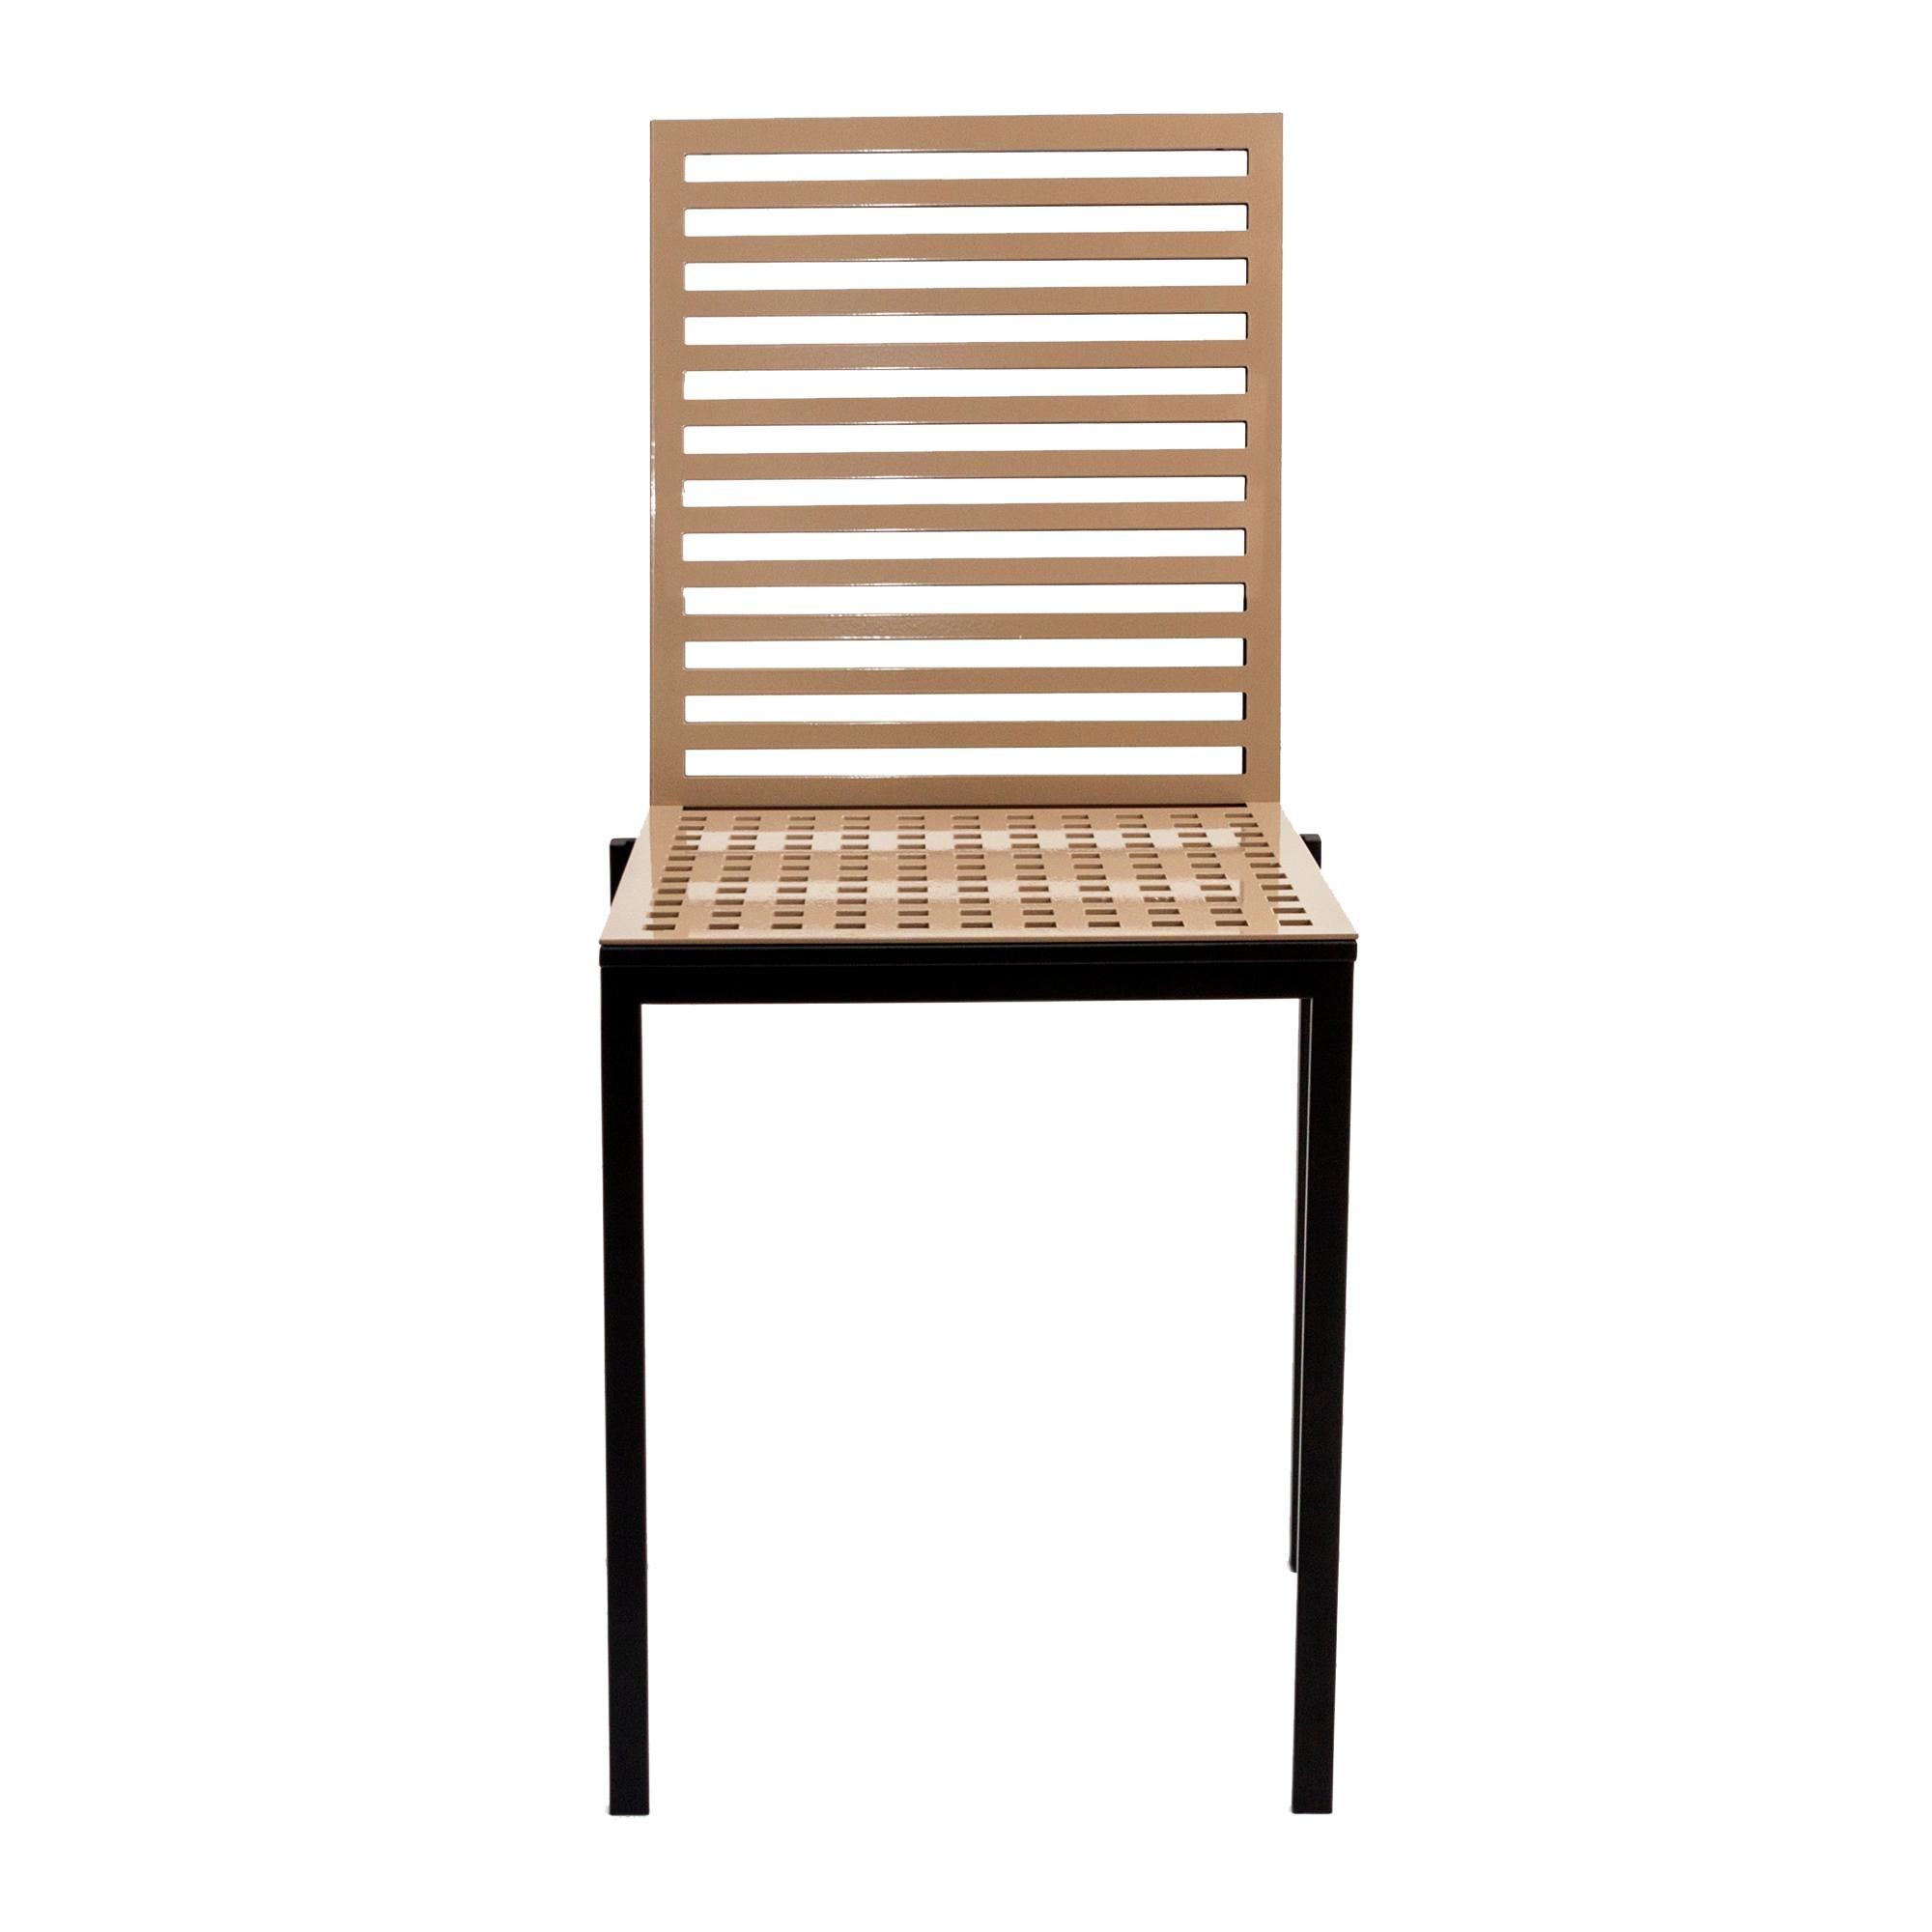 Contemporary Tanit Classic Chair in Beige Colored Aluminum